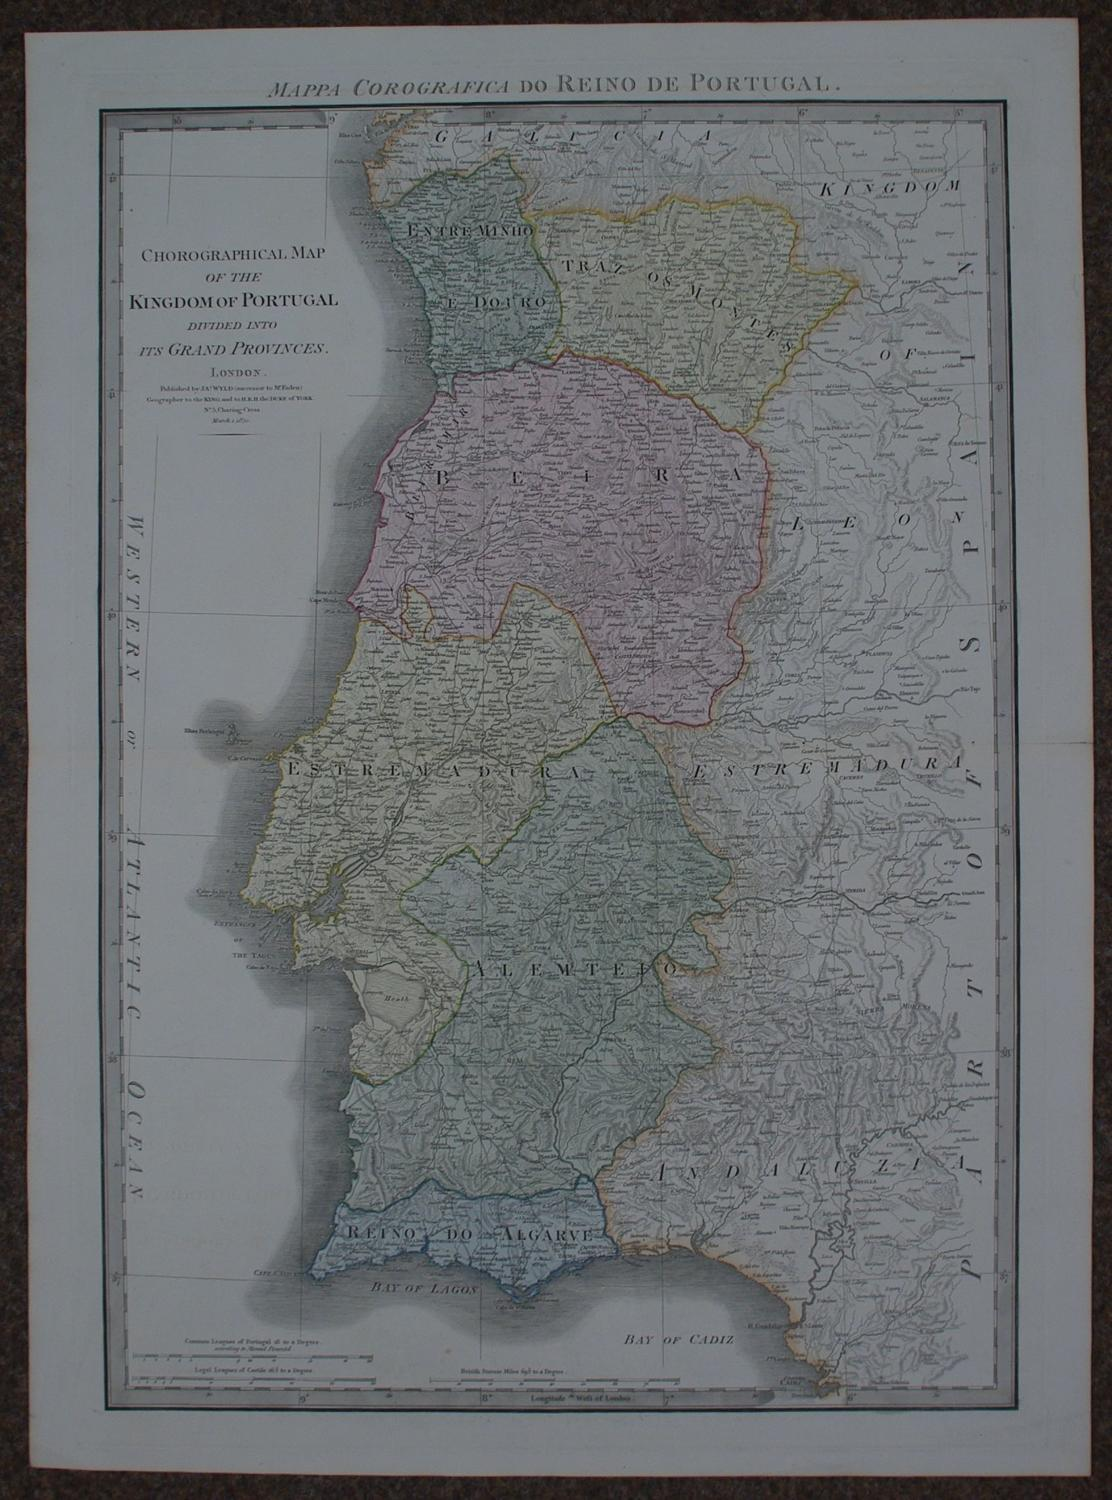 Chorographical Map of the Kingdom of Portugal by James Wyld